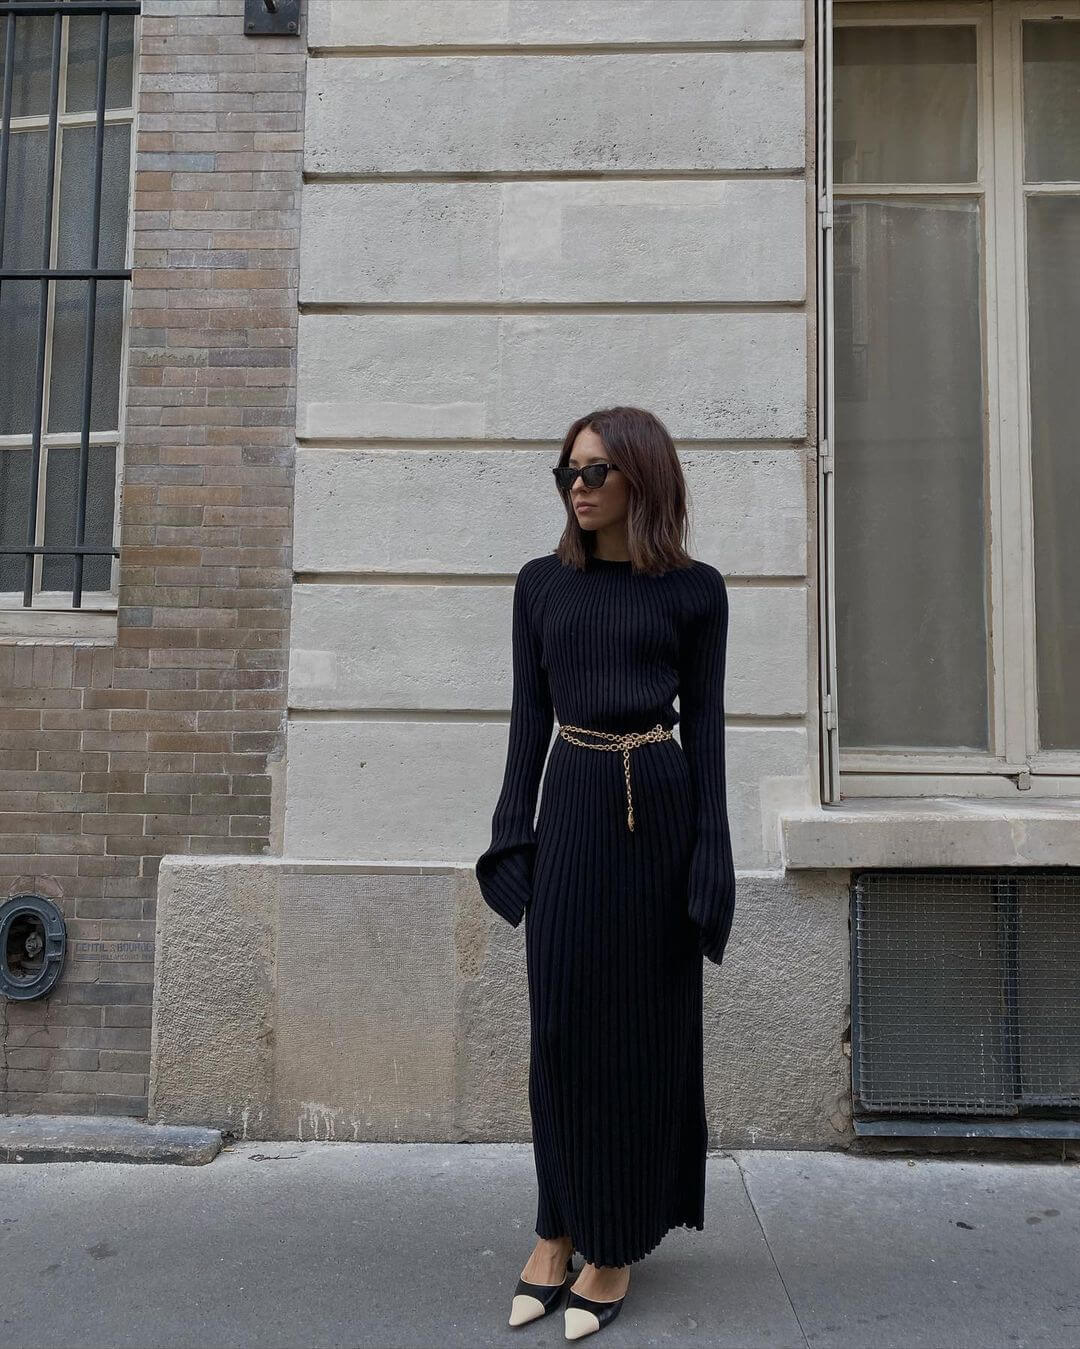 10 Most Stylish All Black Outfits For Fall